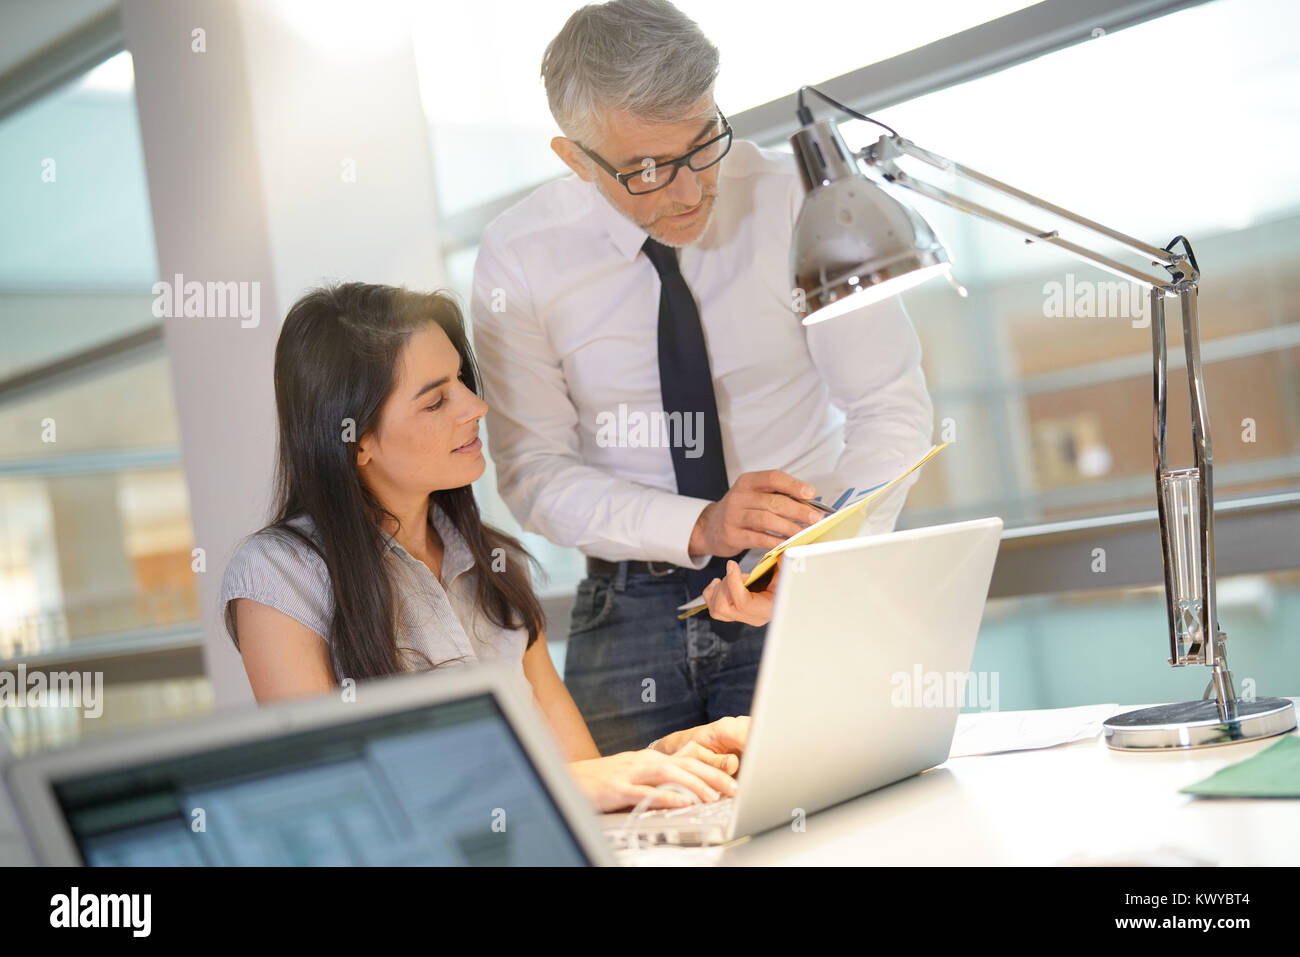 Businessman giving instructions to associate - Stock Image